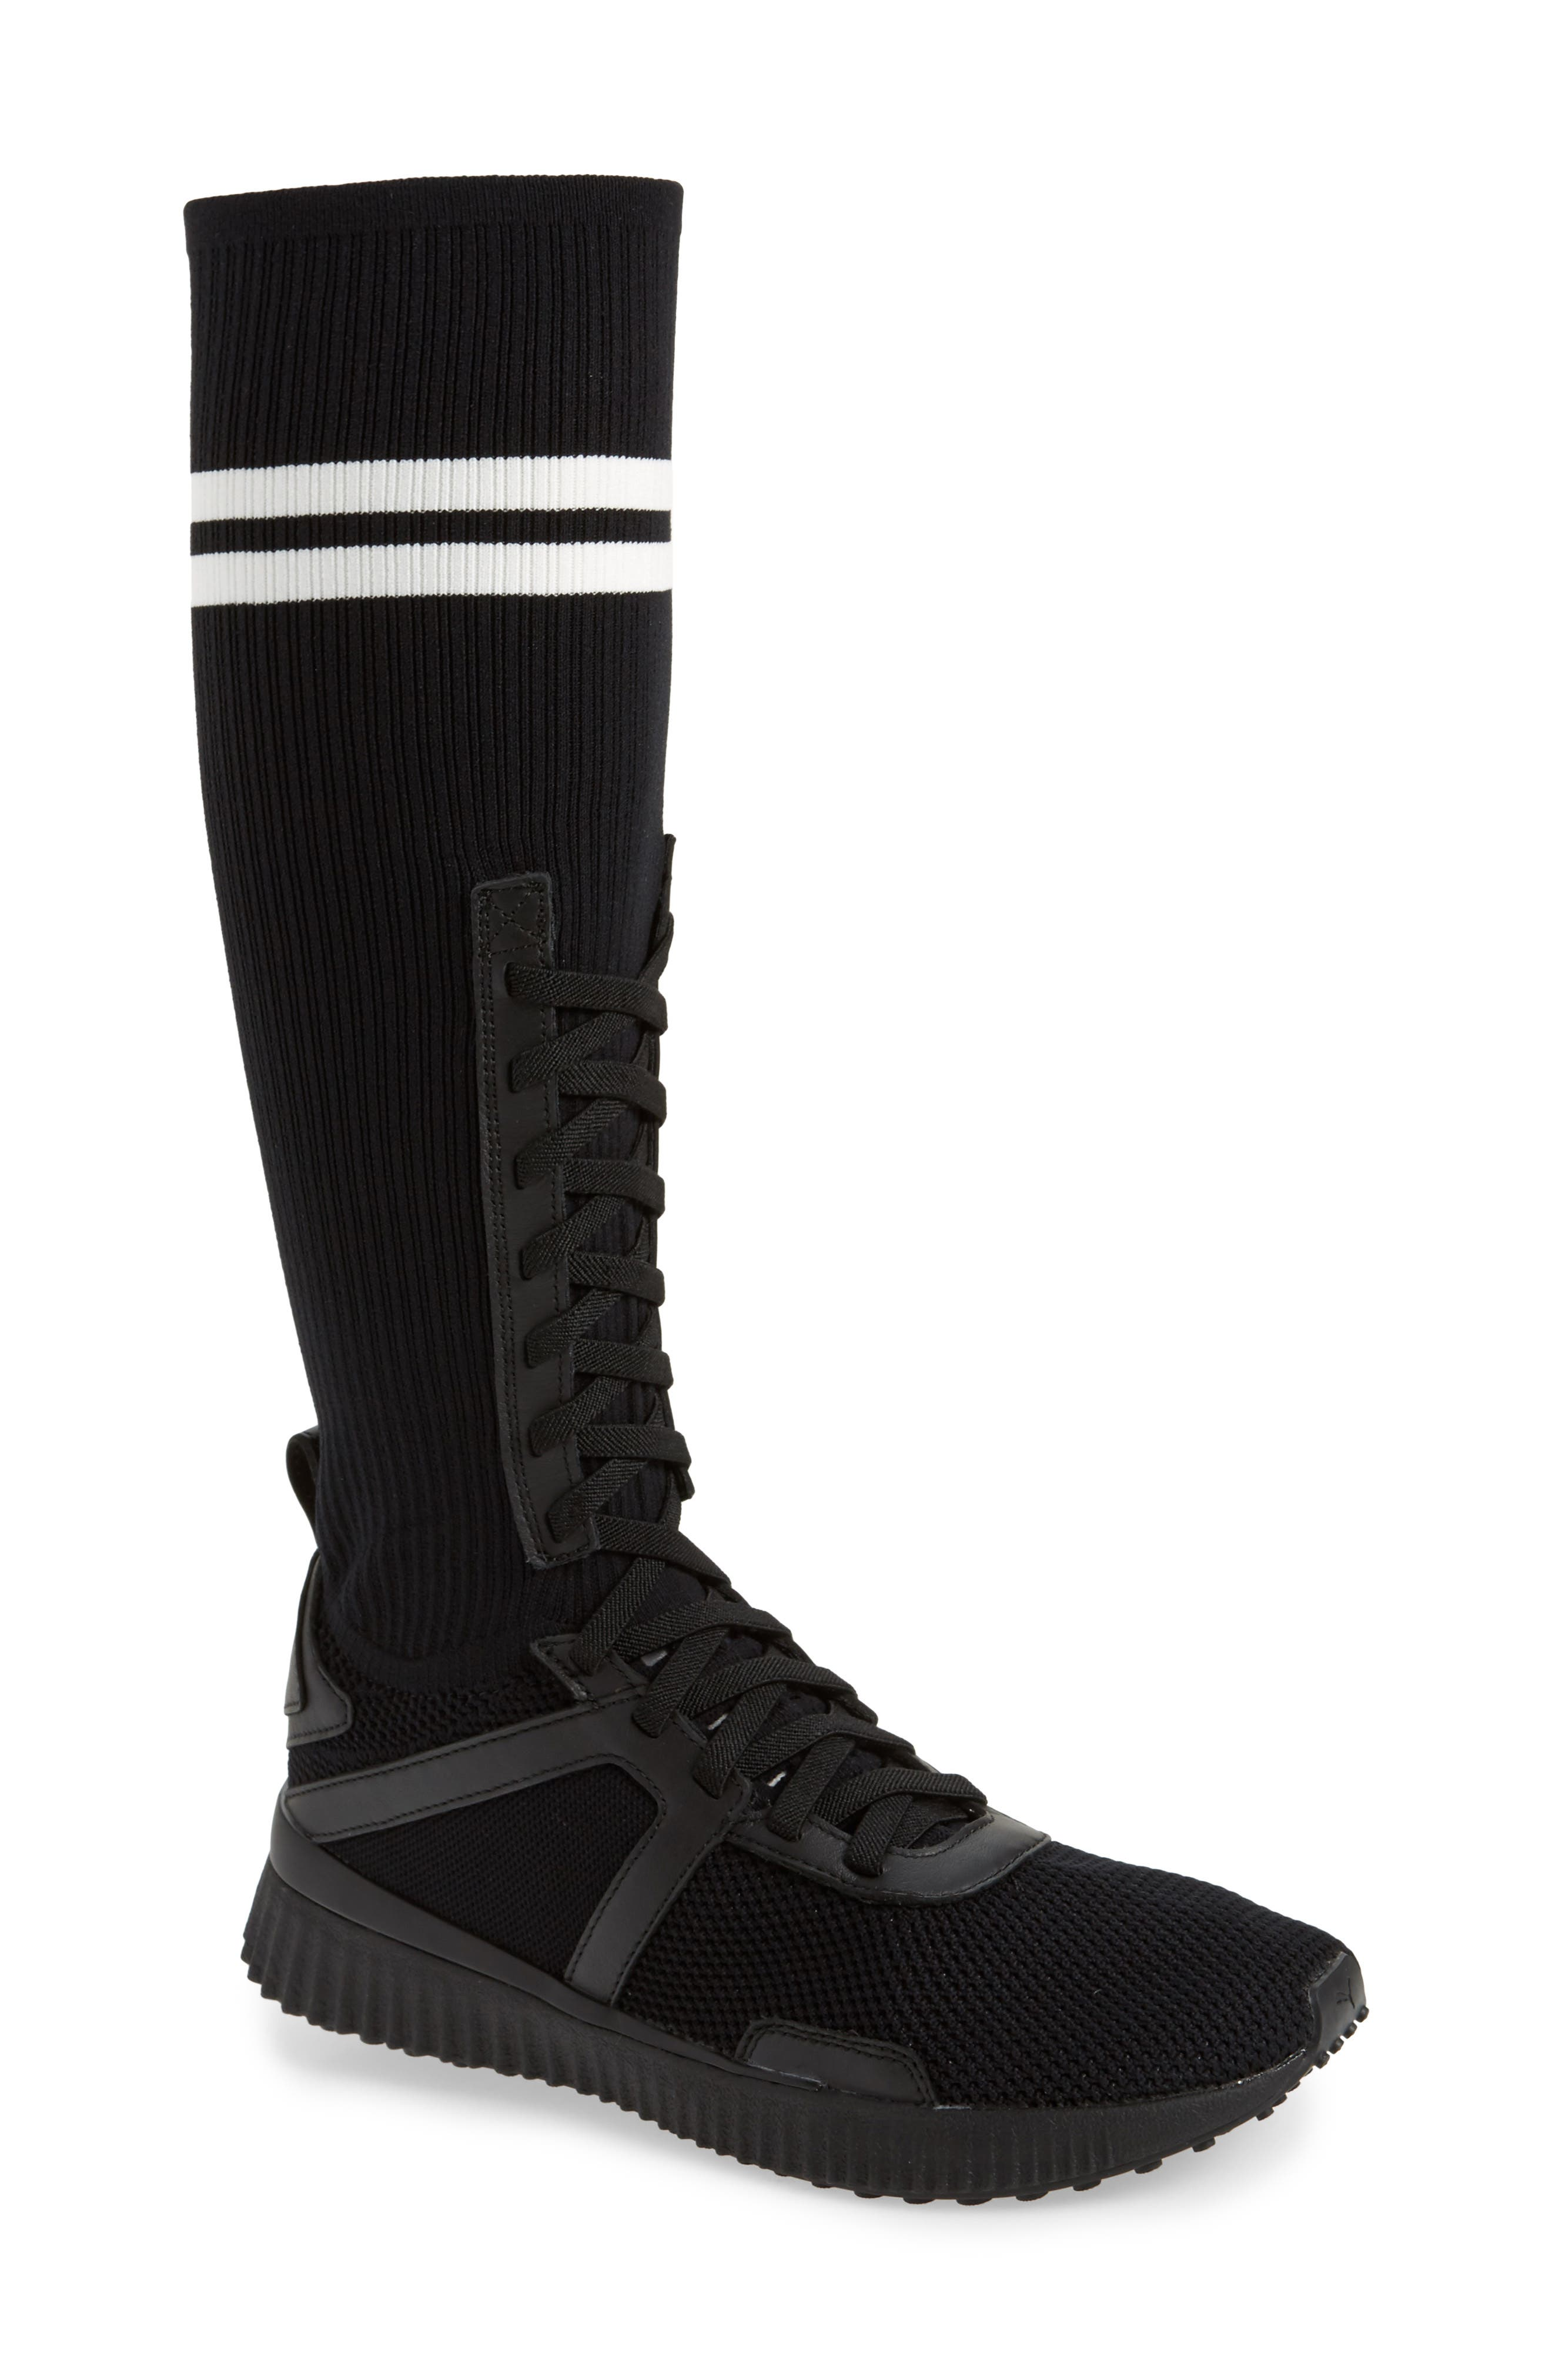 FENTY PUMA by Rihanna Sneaker Boot,                         Main,                         color, Black/ White